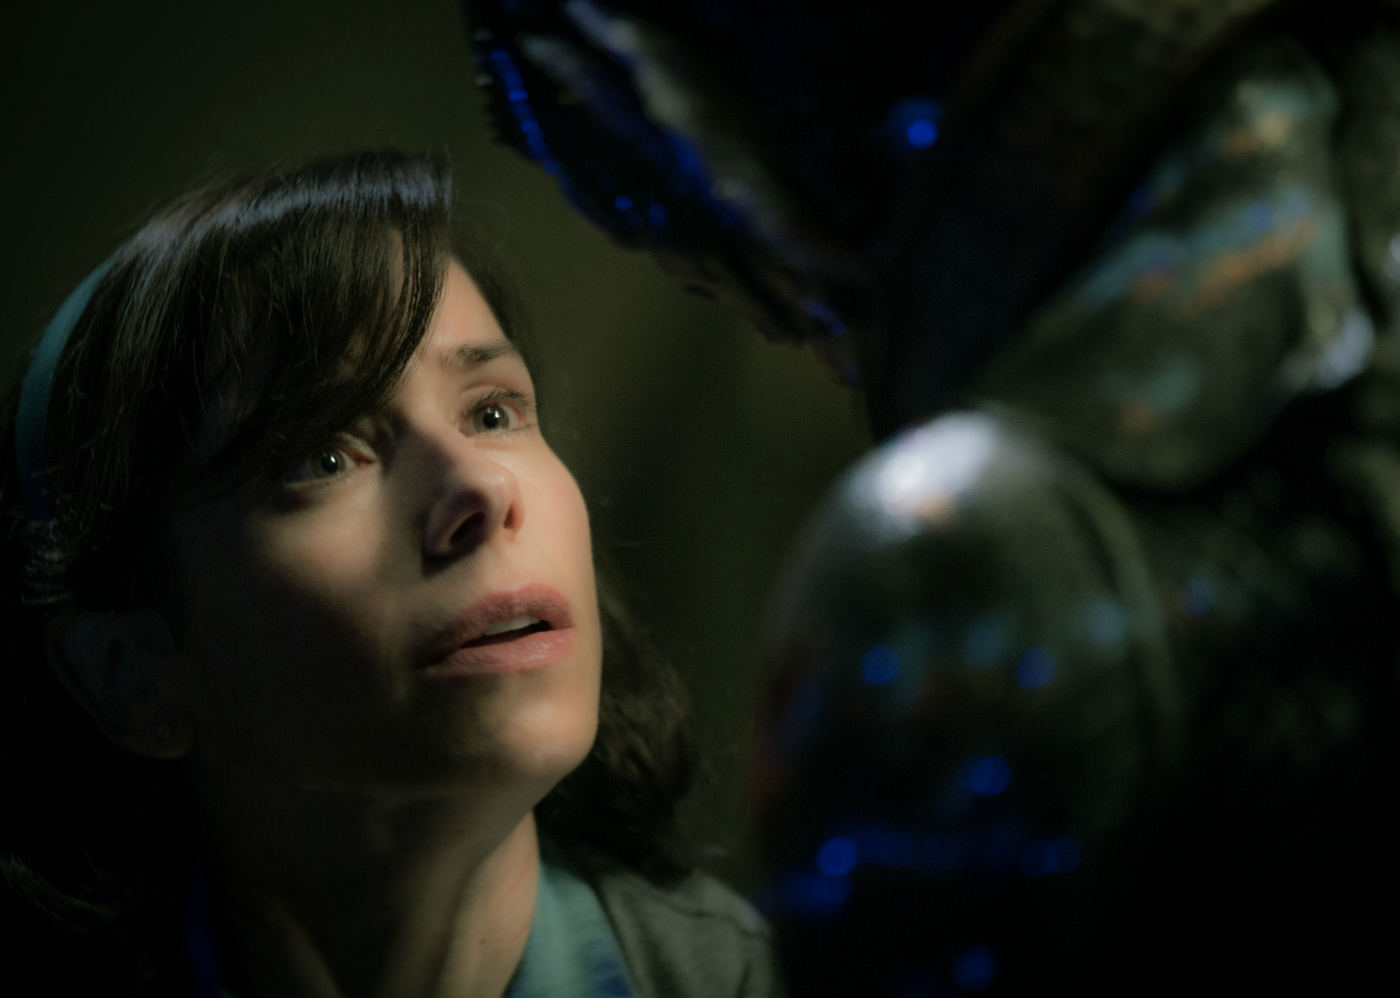 LFF 2017: 'The Shape of Water' is a Beautiful Ballad for the Lonely